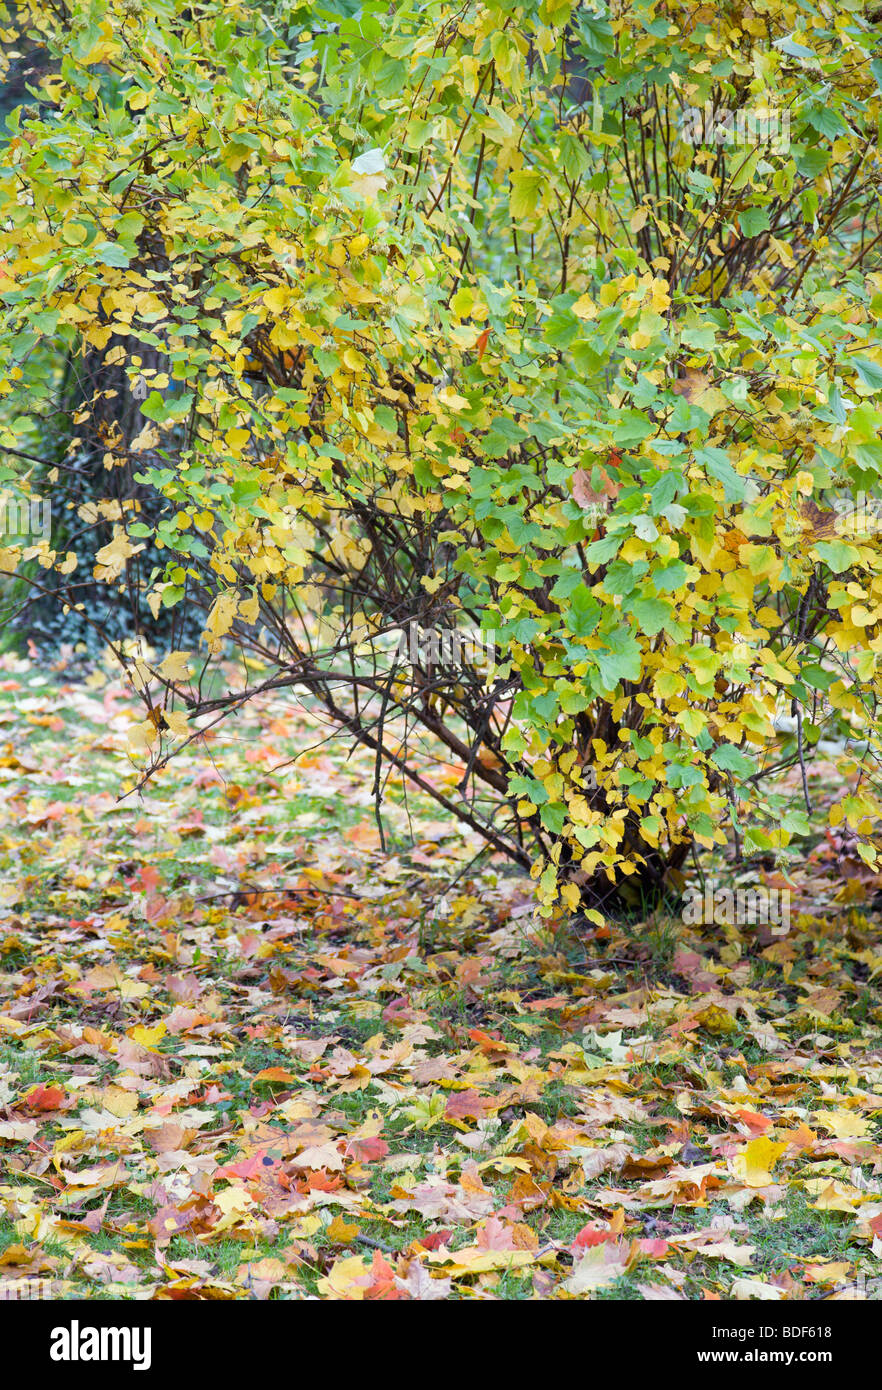 autumn green grass with abscised leafs and varicoloured bush - Stock Image